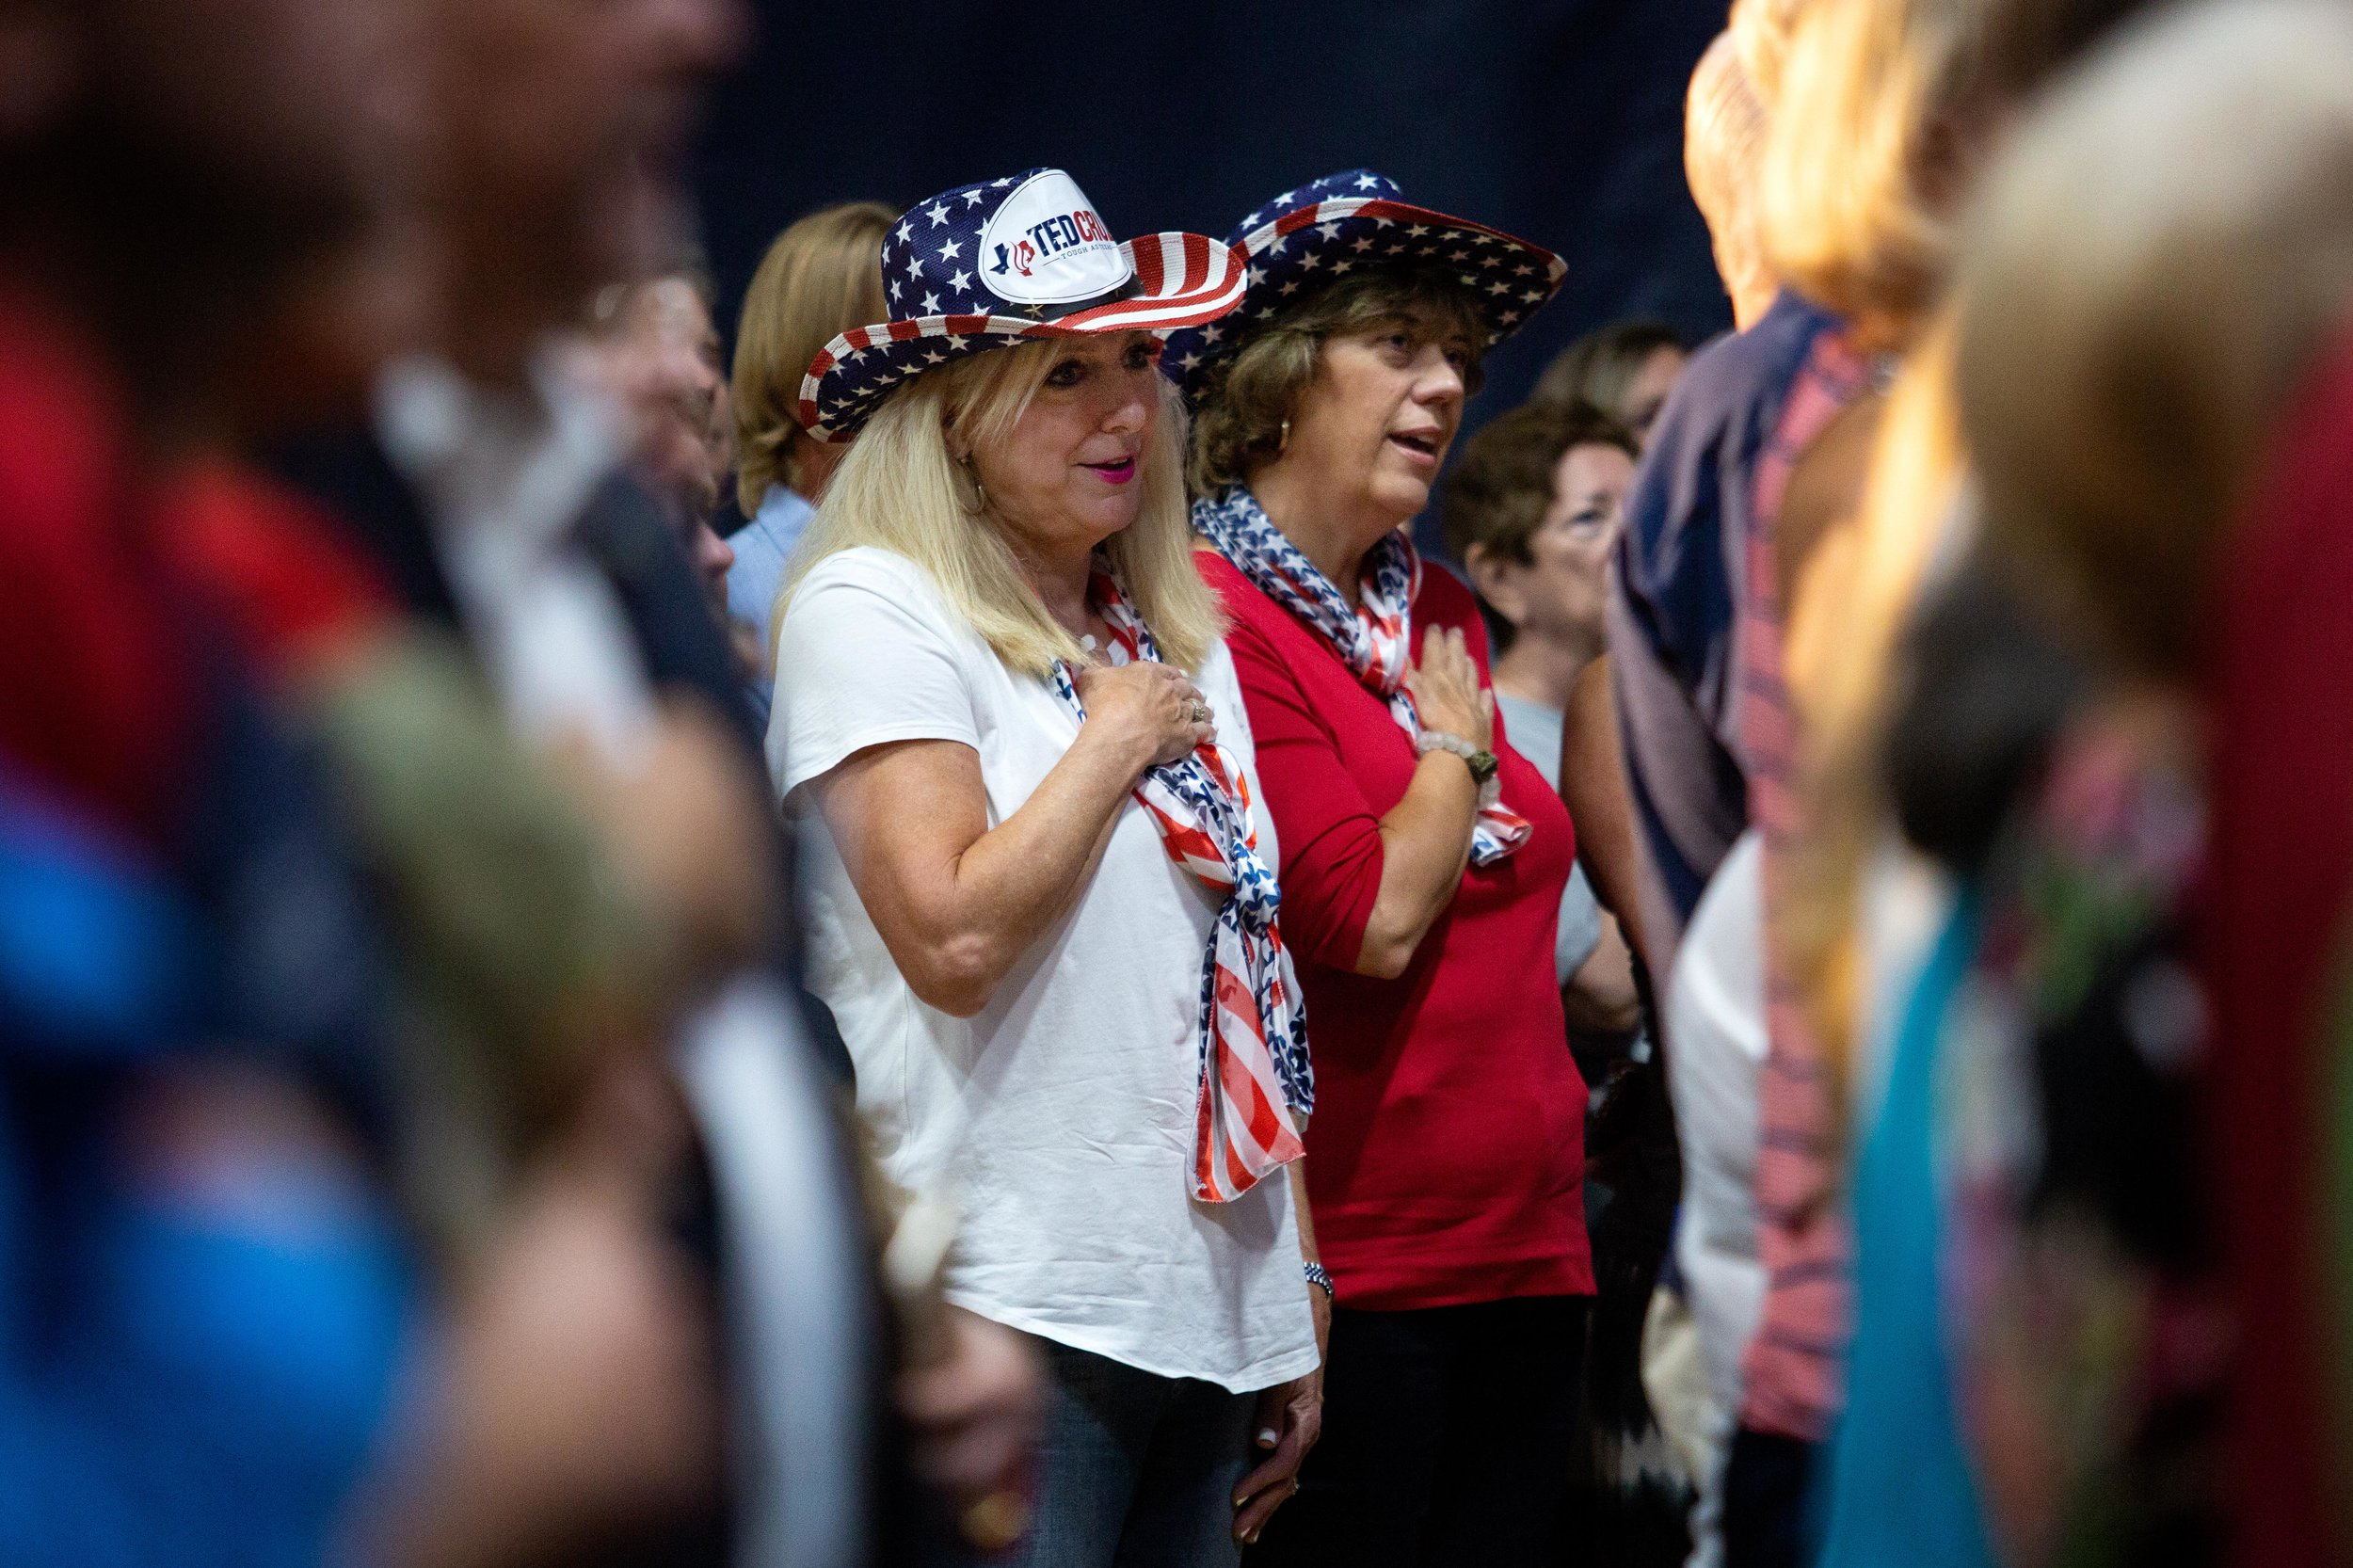 AUSTIN, TX. Sept. 8, 2018. Jennifer Kruse (left) and Linda Knox (right) sing the national anthem during a campaign rally for U.S. Sen. Ted Cruz in Katy, Texas. Montinique Monroe for KUT News